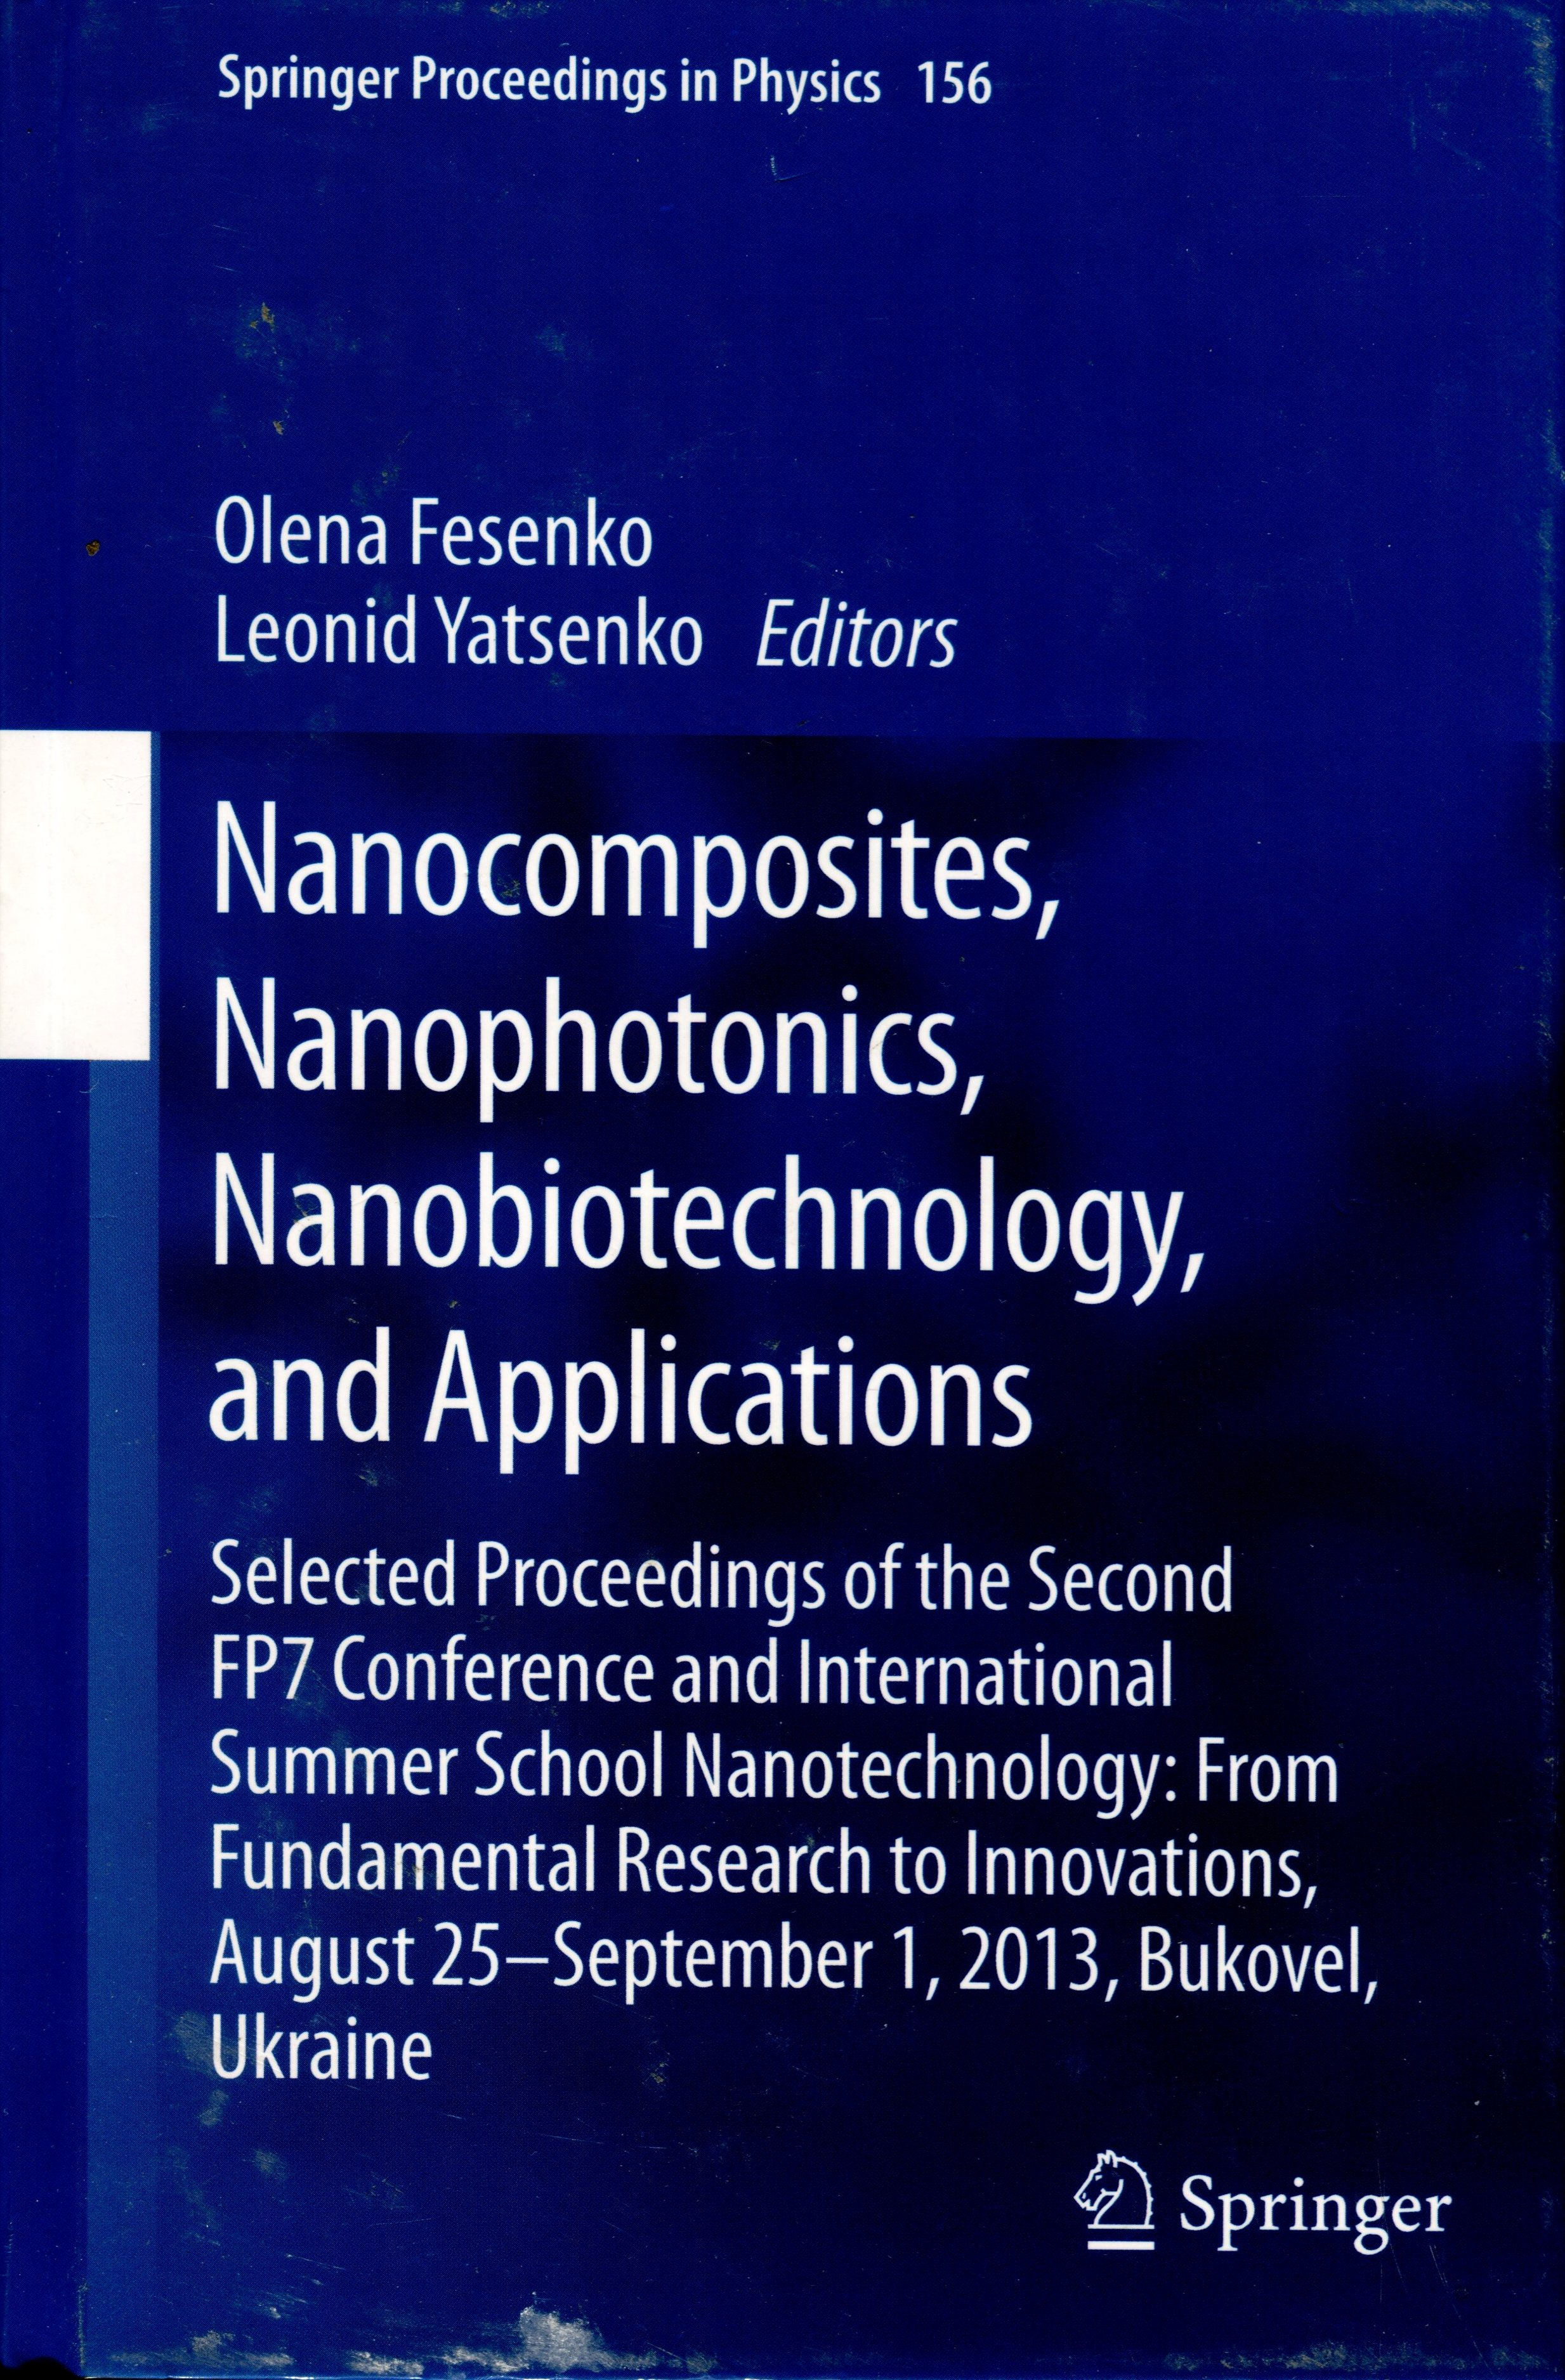 Nanocomposites, Nanophotonics, Nanobiotechnology, and Applications